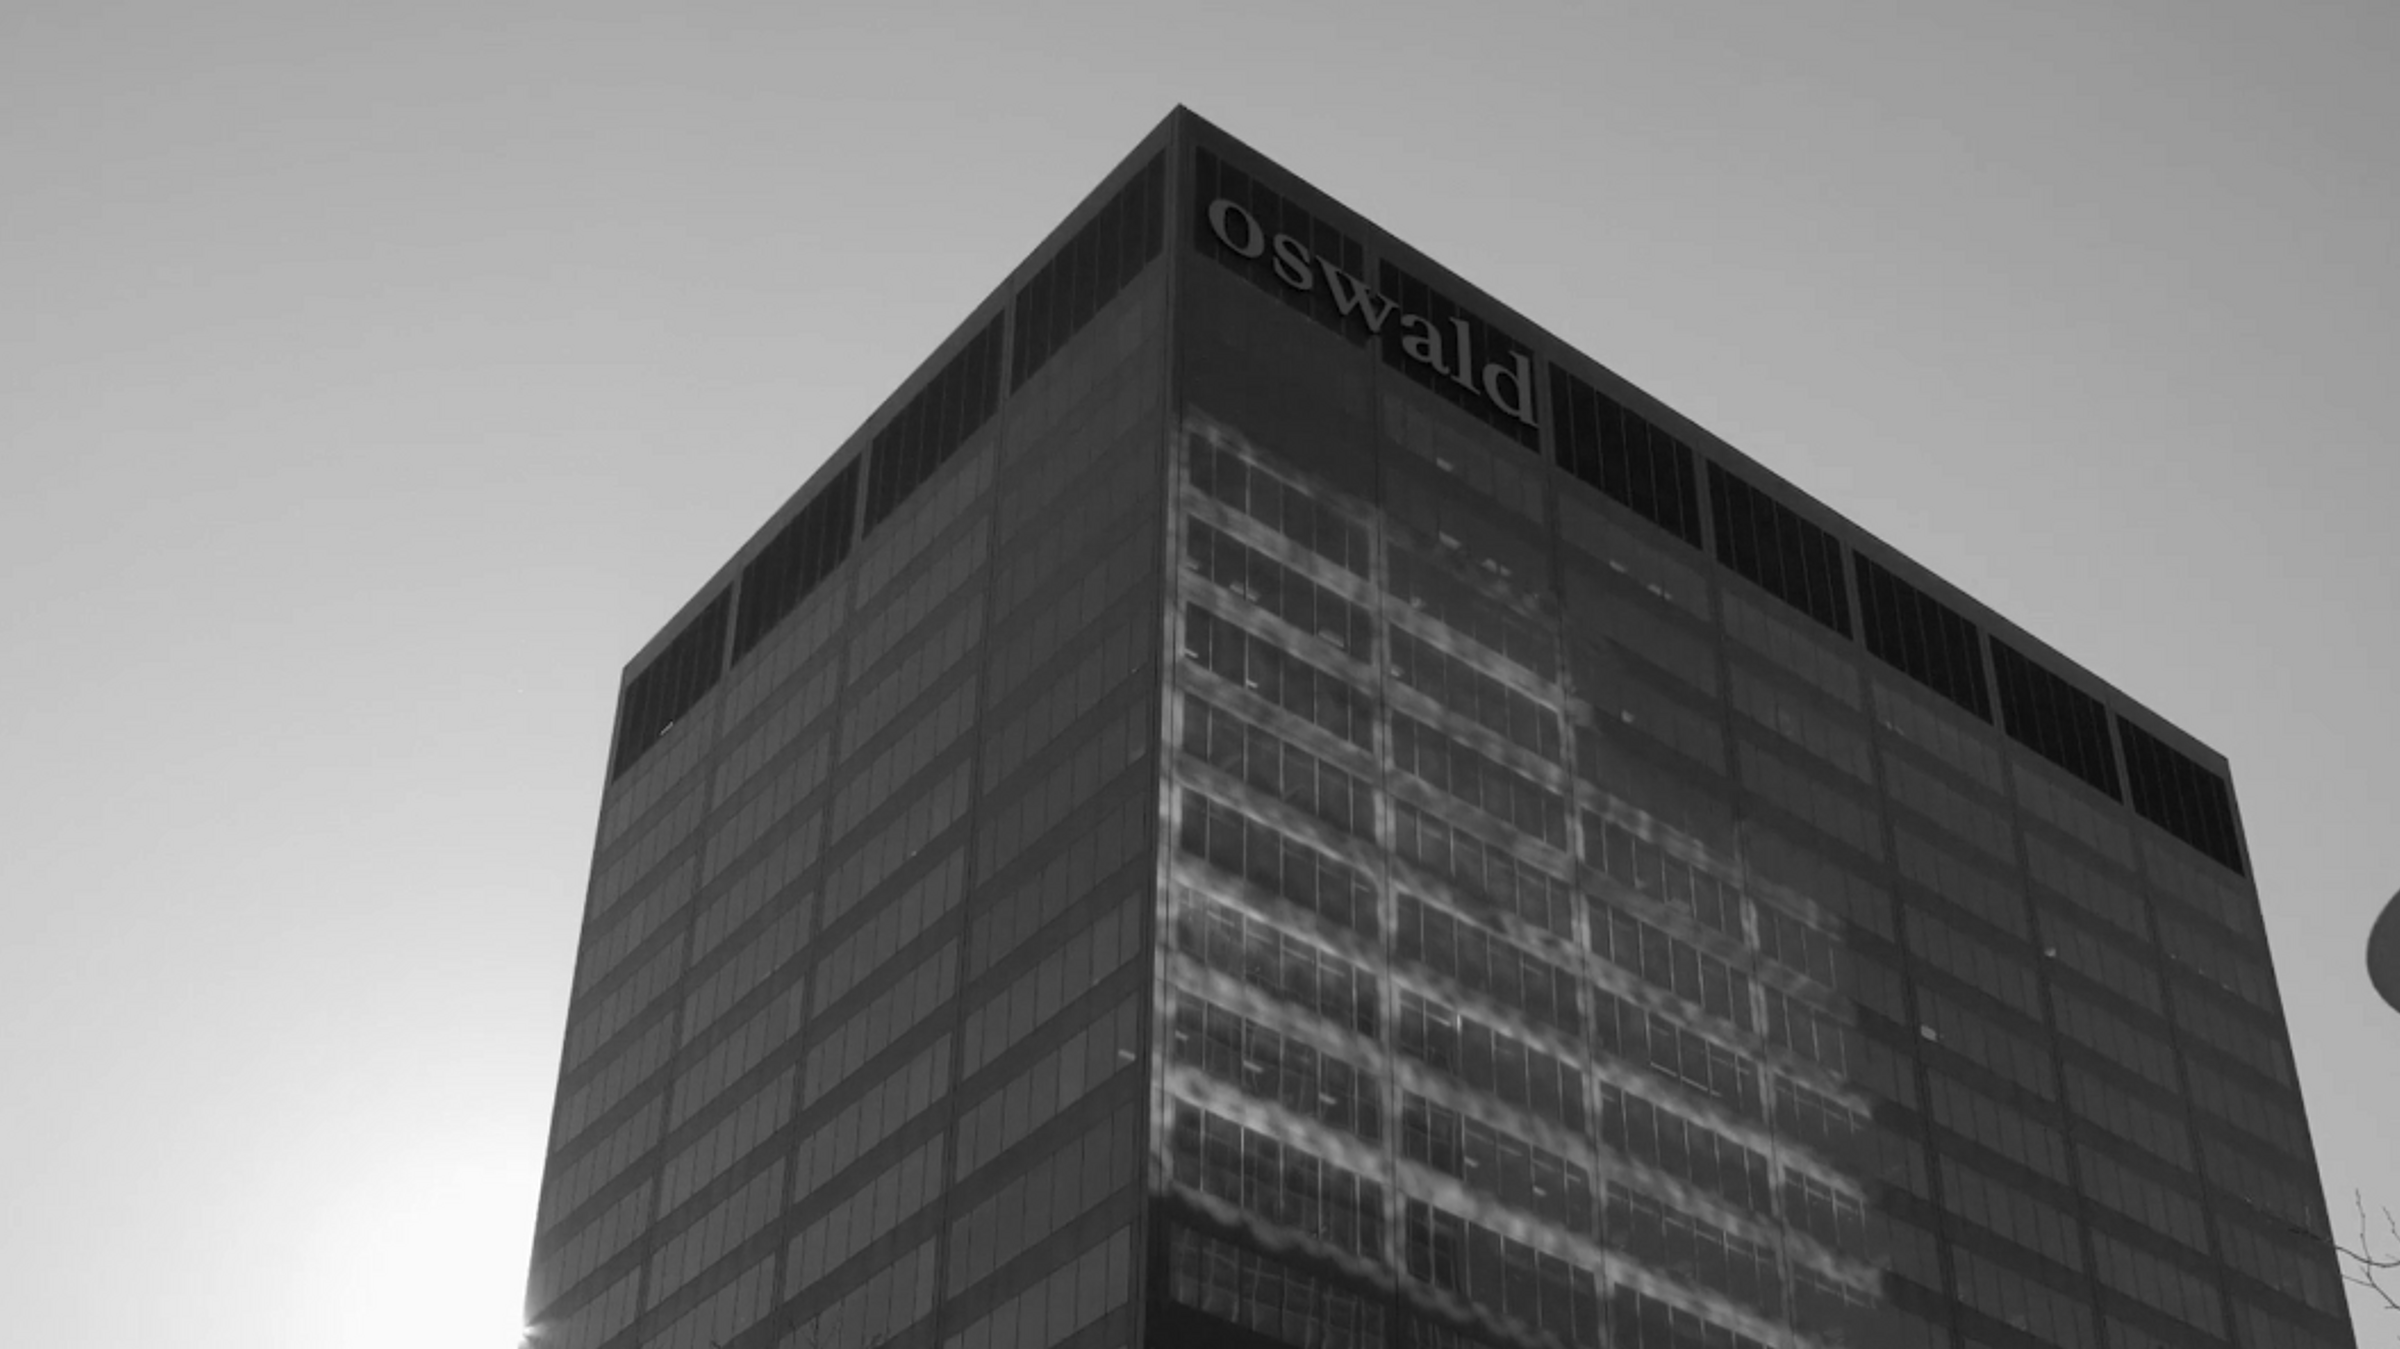 Looking up at the Oswald Centre